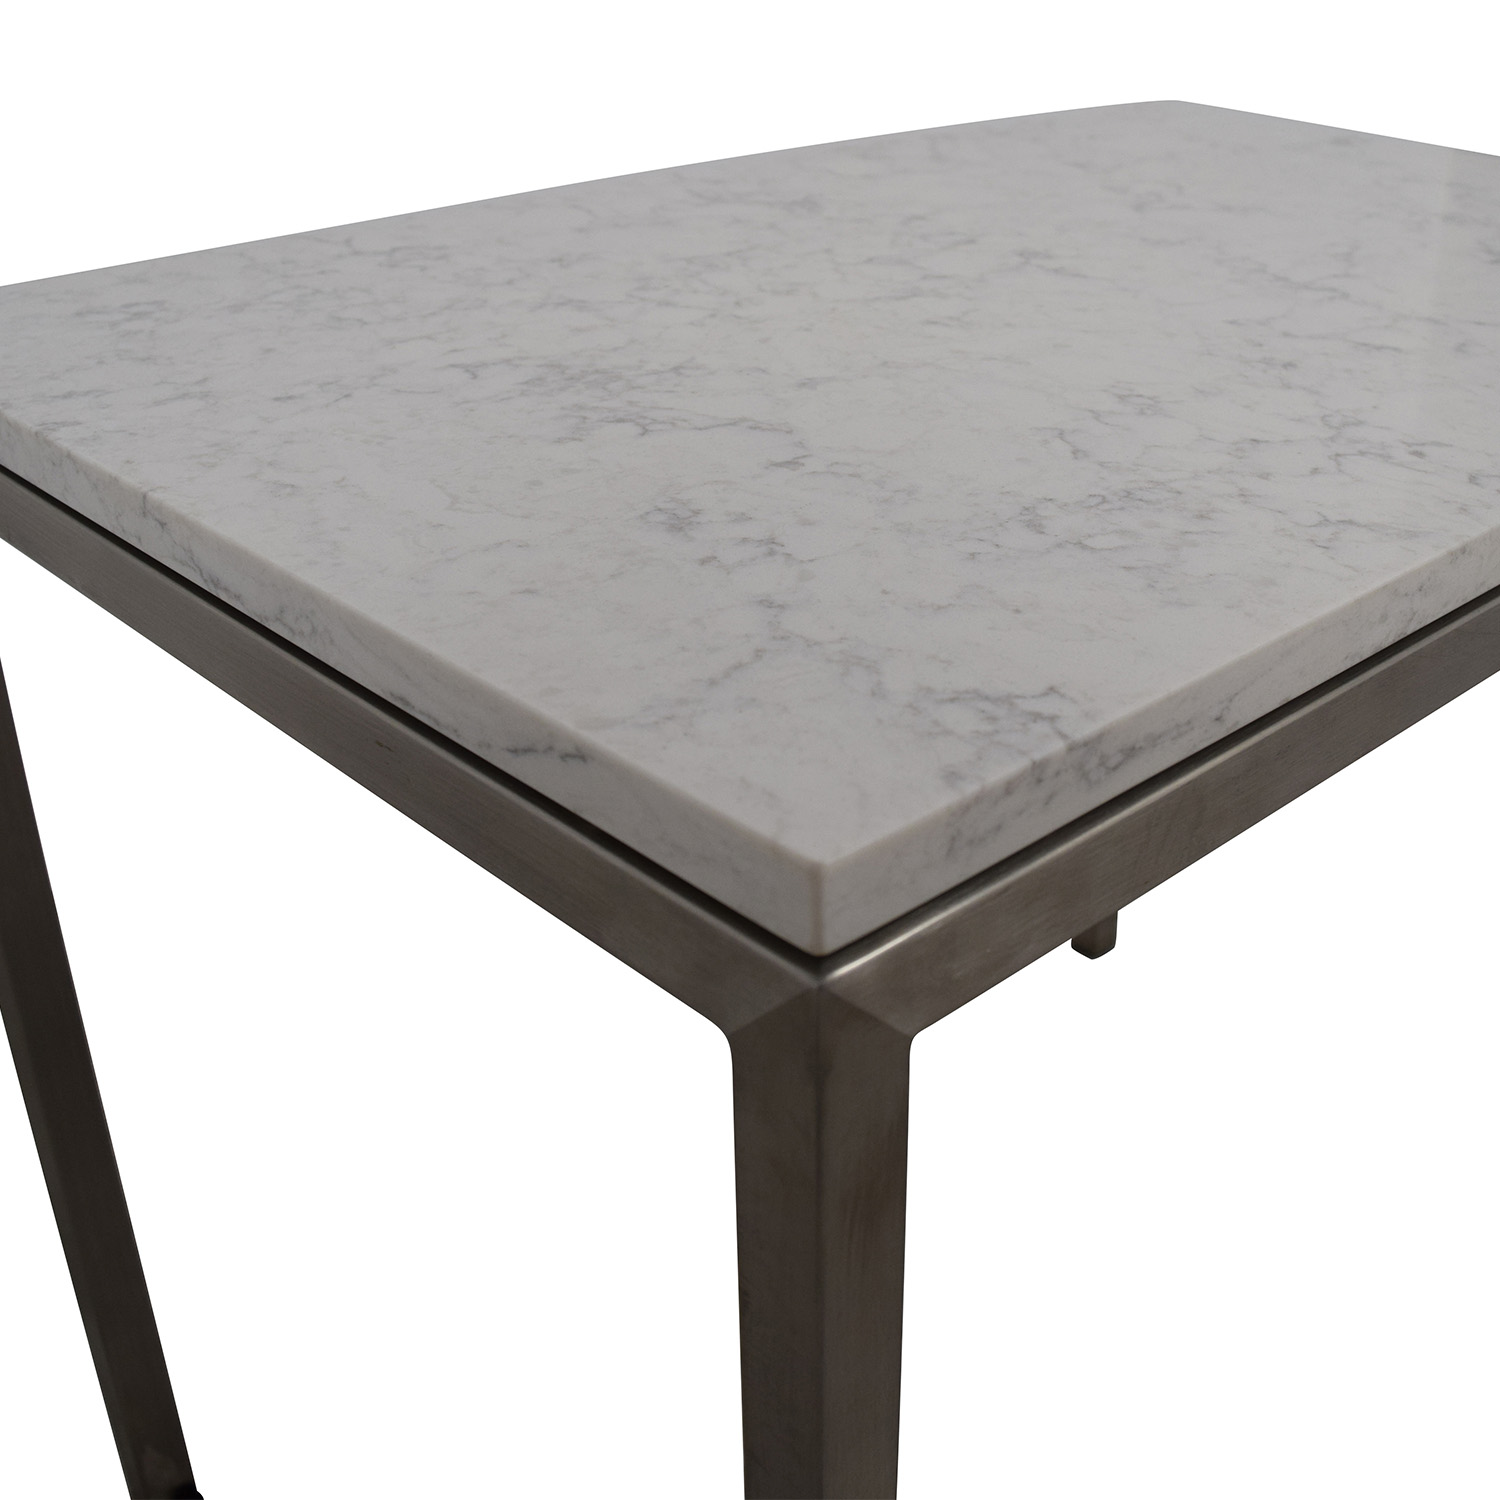 57 off room board room board portica table with white